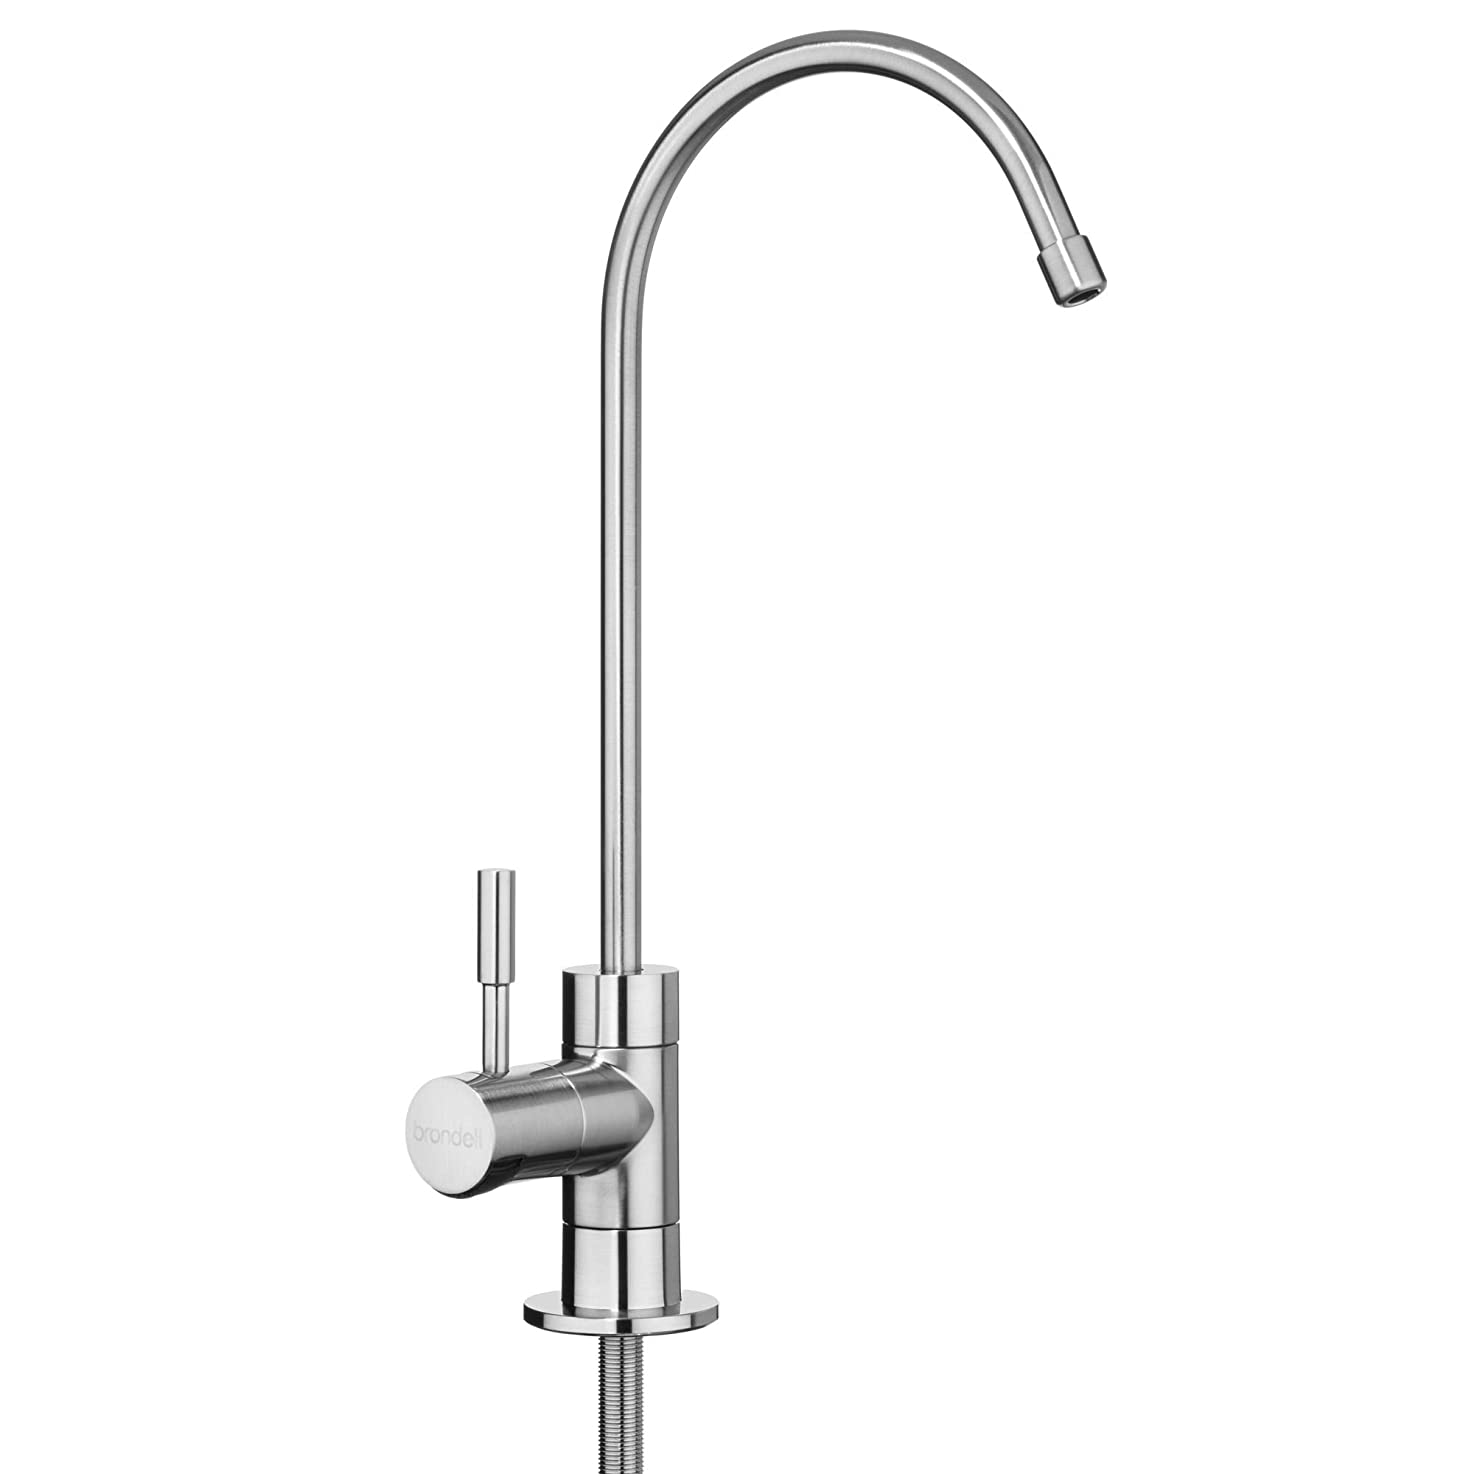 Brondell - Water Filter Faucet in Brushed Nickel with LED filter change indicator | sink faucet for Circle RO System 6 month filters | Modern style in Nickel | Only for use with Brondell Circle RO